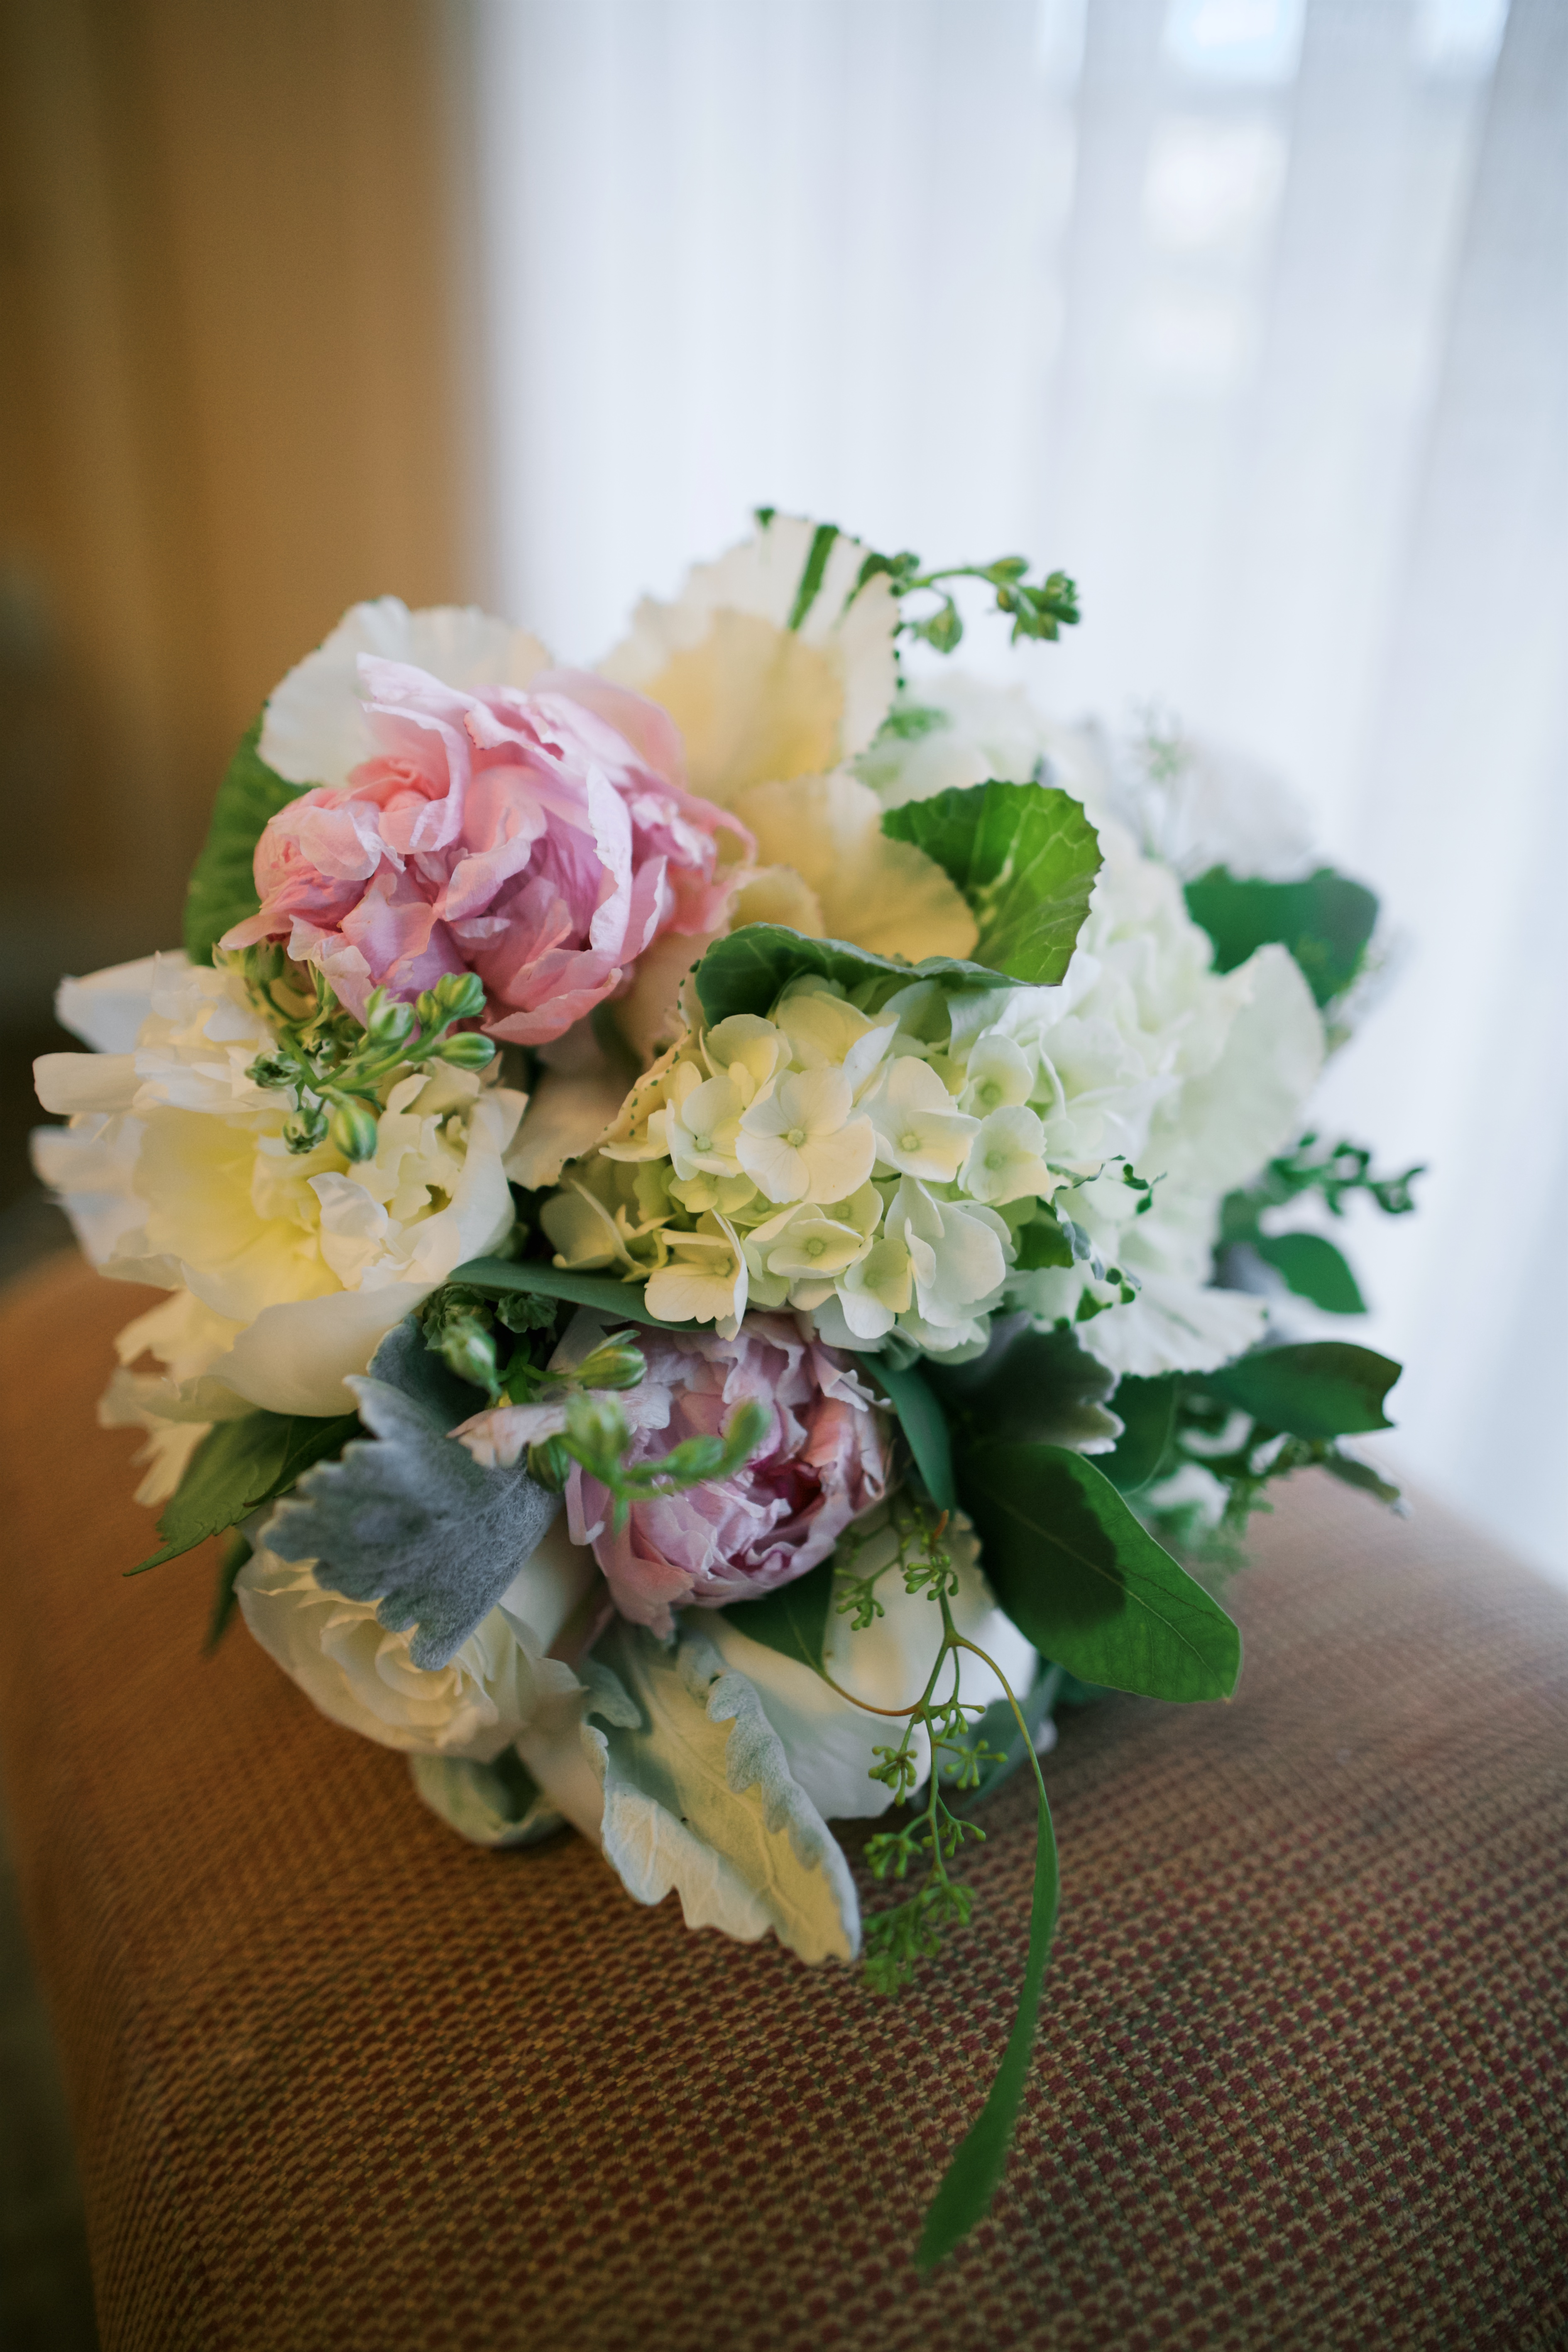 Our wedding flowers kristin maier home planning a wedding is no easy task figuring out a wedding budget and staying on track is a whole other story you really need to take the time to assess izmirmasajfo